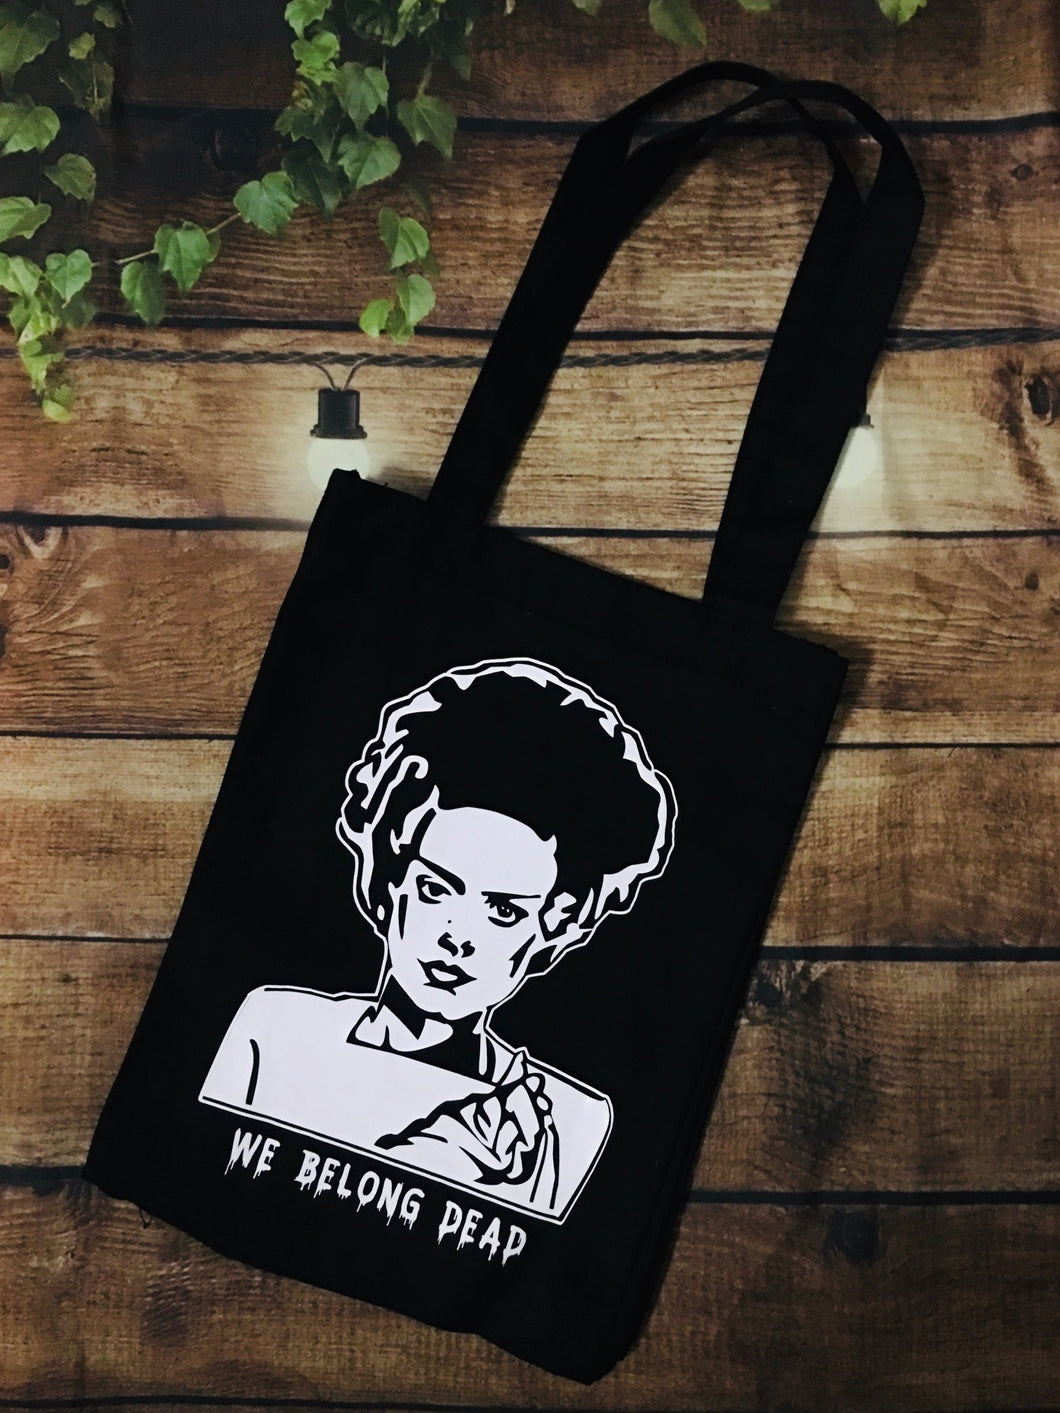 Bride of Frankenstein Tote Bag - Heavy Duty